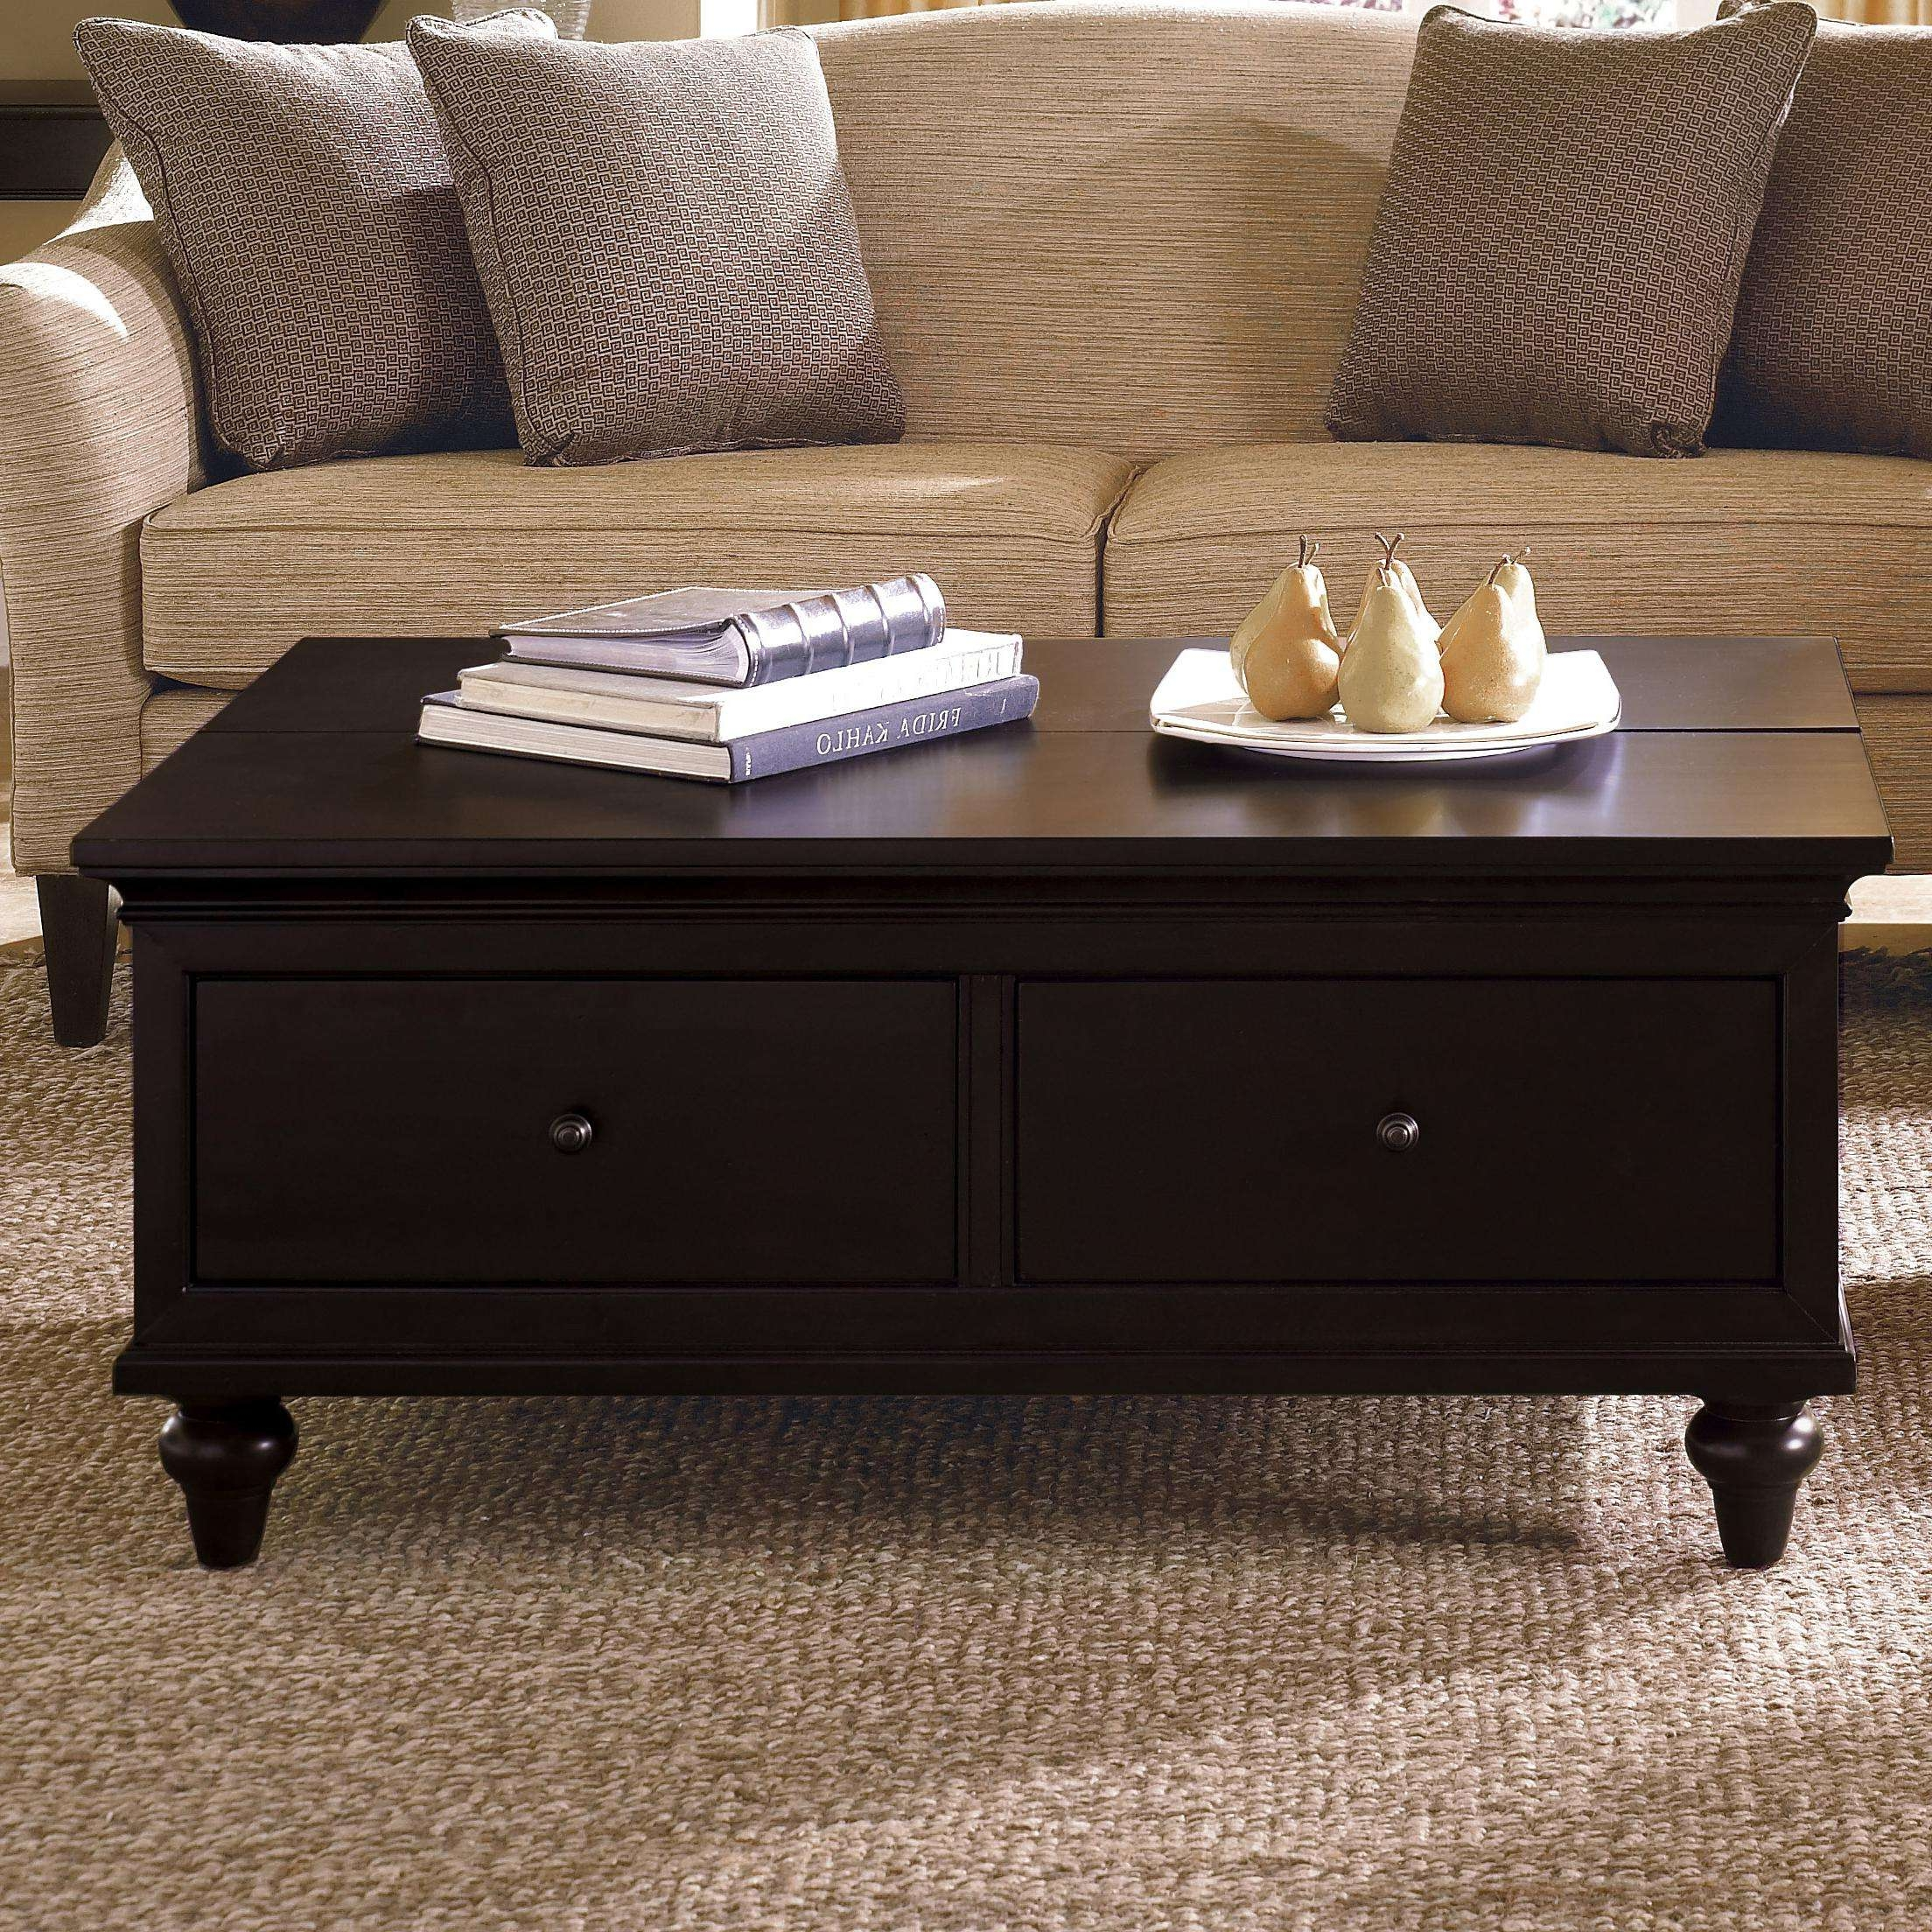 2017 Small Coffee Tables With Drawer Regarding Black Coffee Tables With Drawers • Drawer Ideas (View 1 of 20)